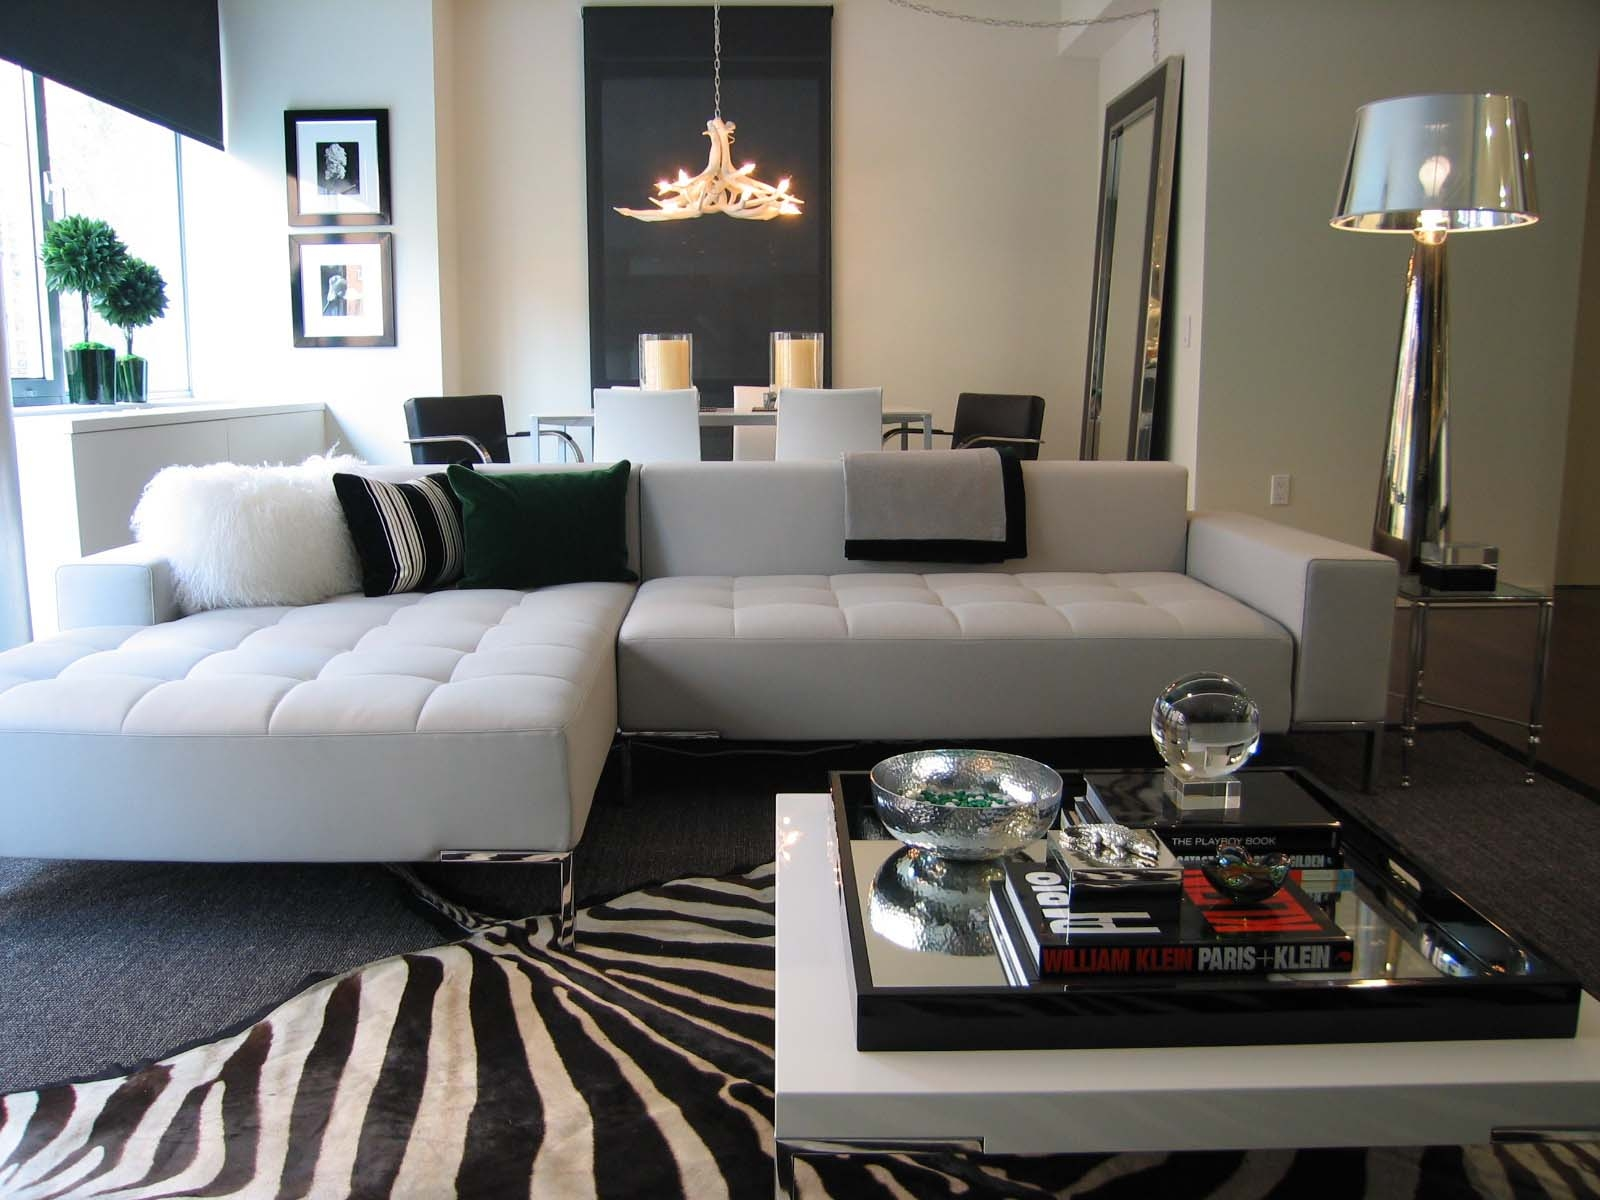 Modern Living Room with Zebra Carpet